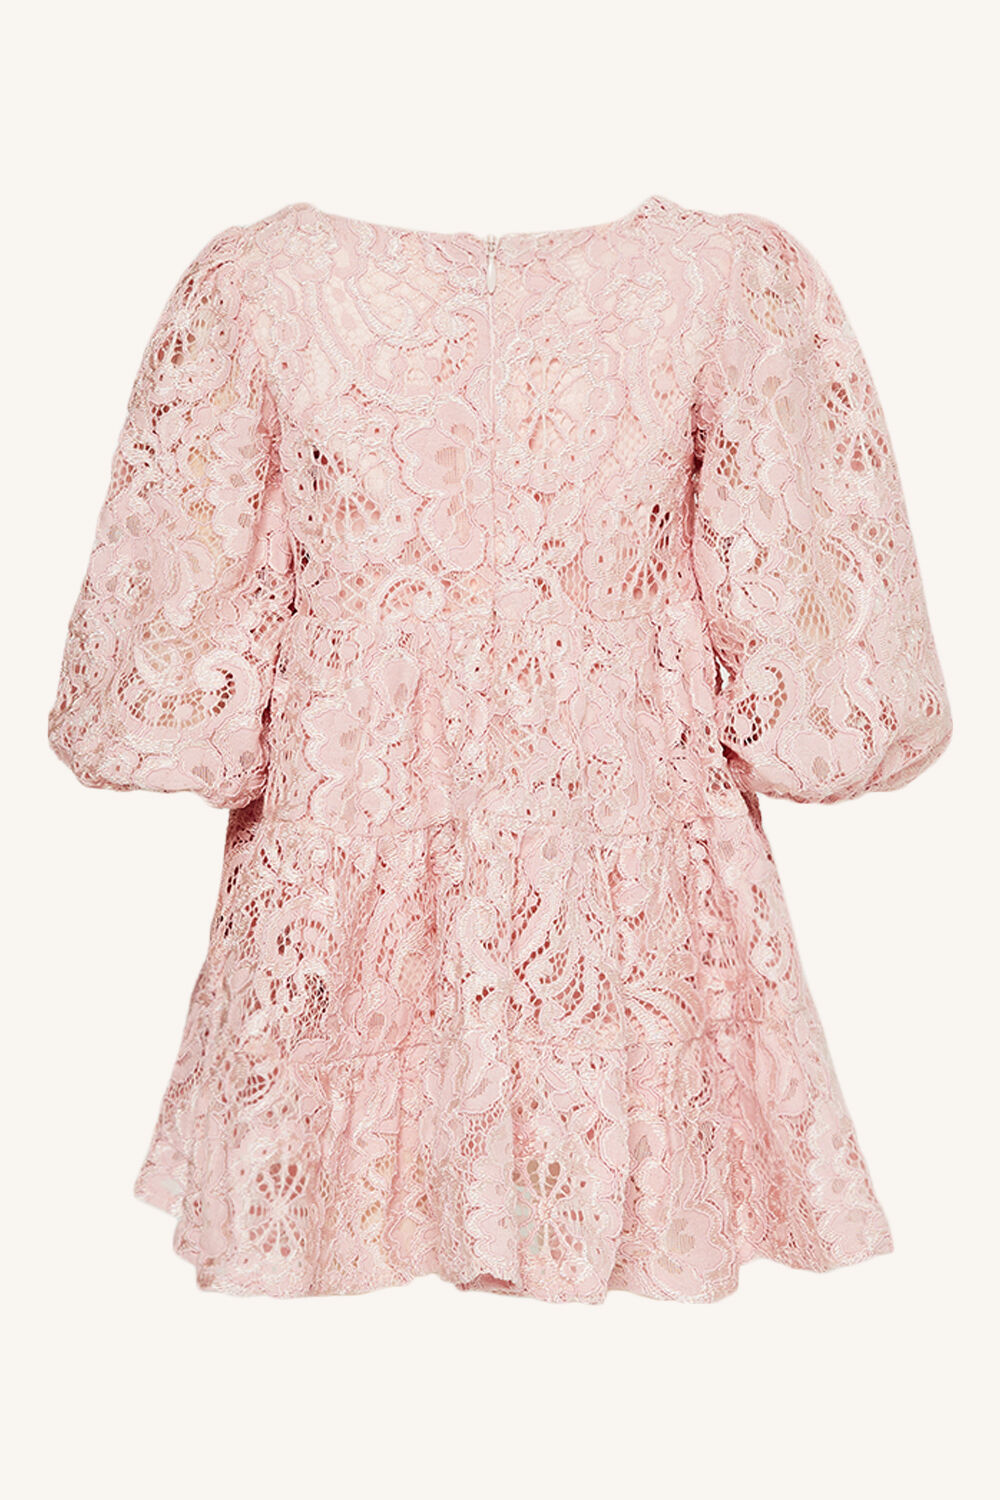 BABY GIRL ELLA LACE DRESS in colour SOFT PINK